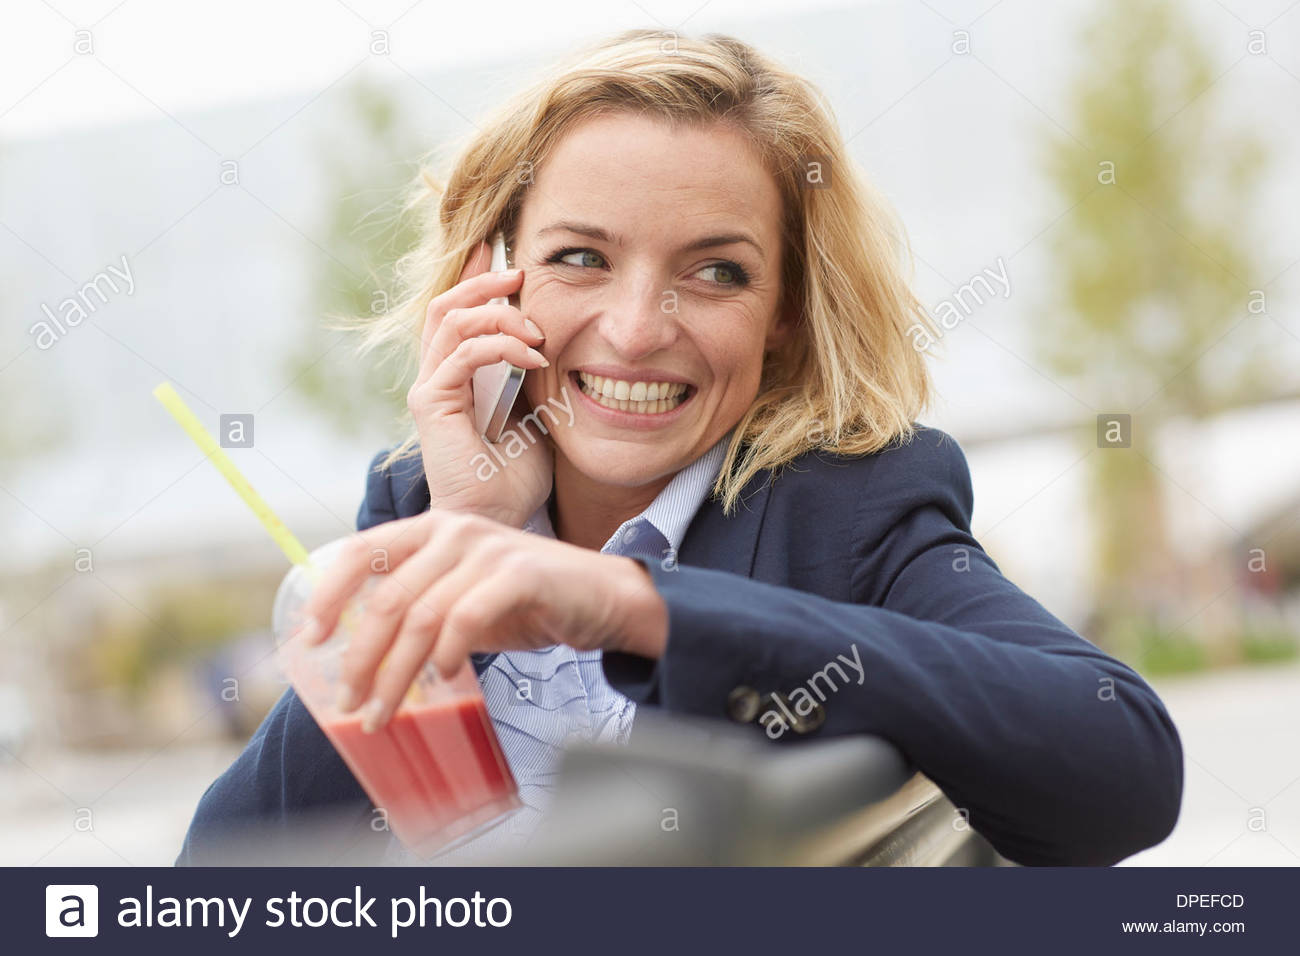 Office worker having lunch break on park bench Photo Stock